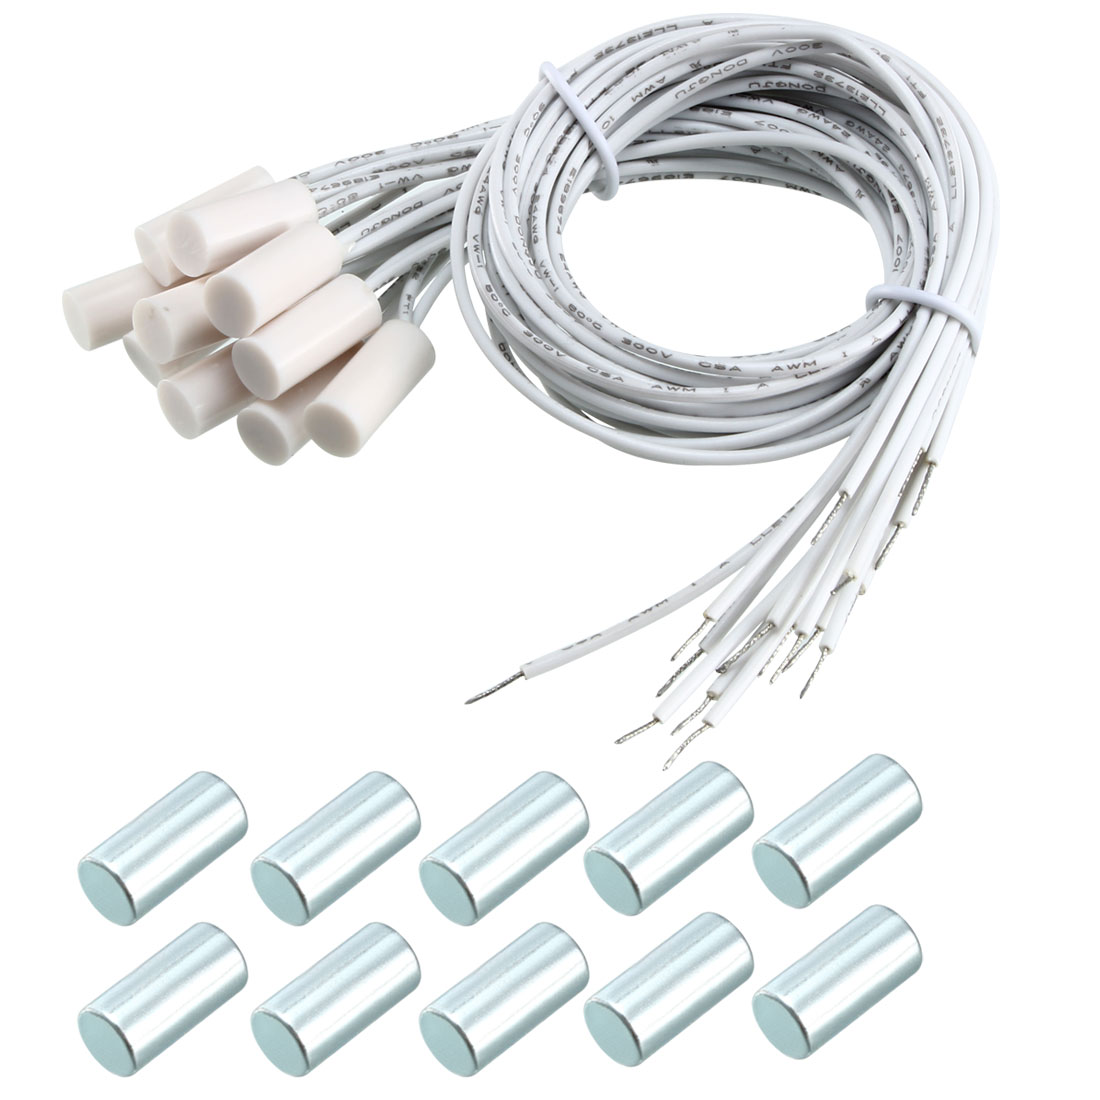 10pcs HC-34A NC Recessed Wired Gate Contact Sensor Alarm Magnetic Reed Switch